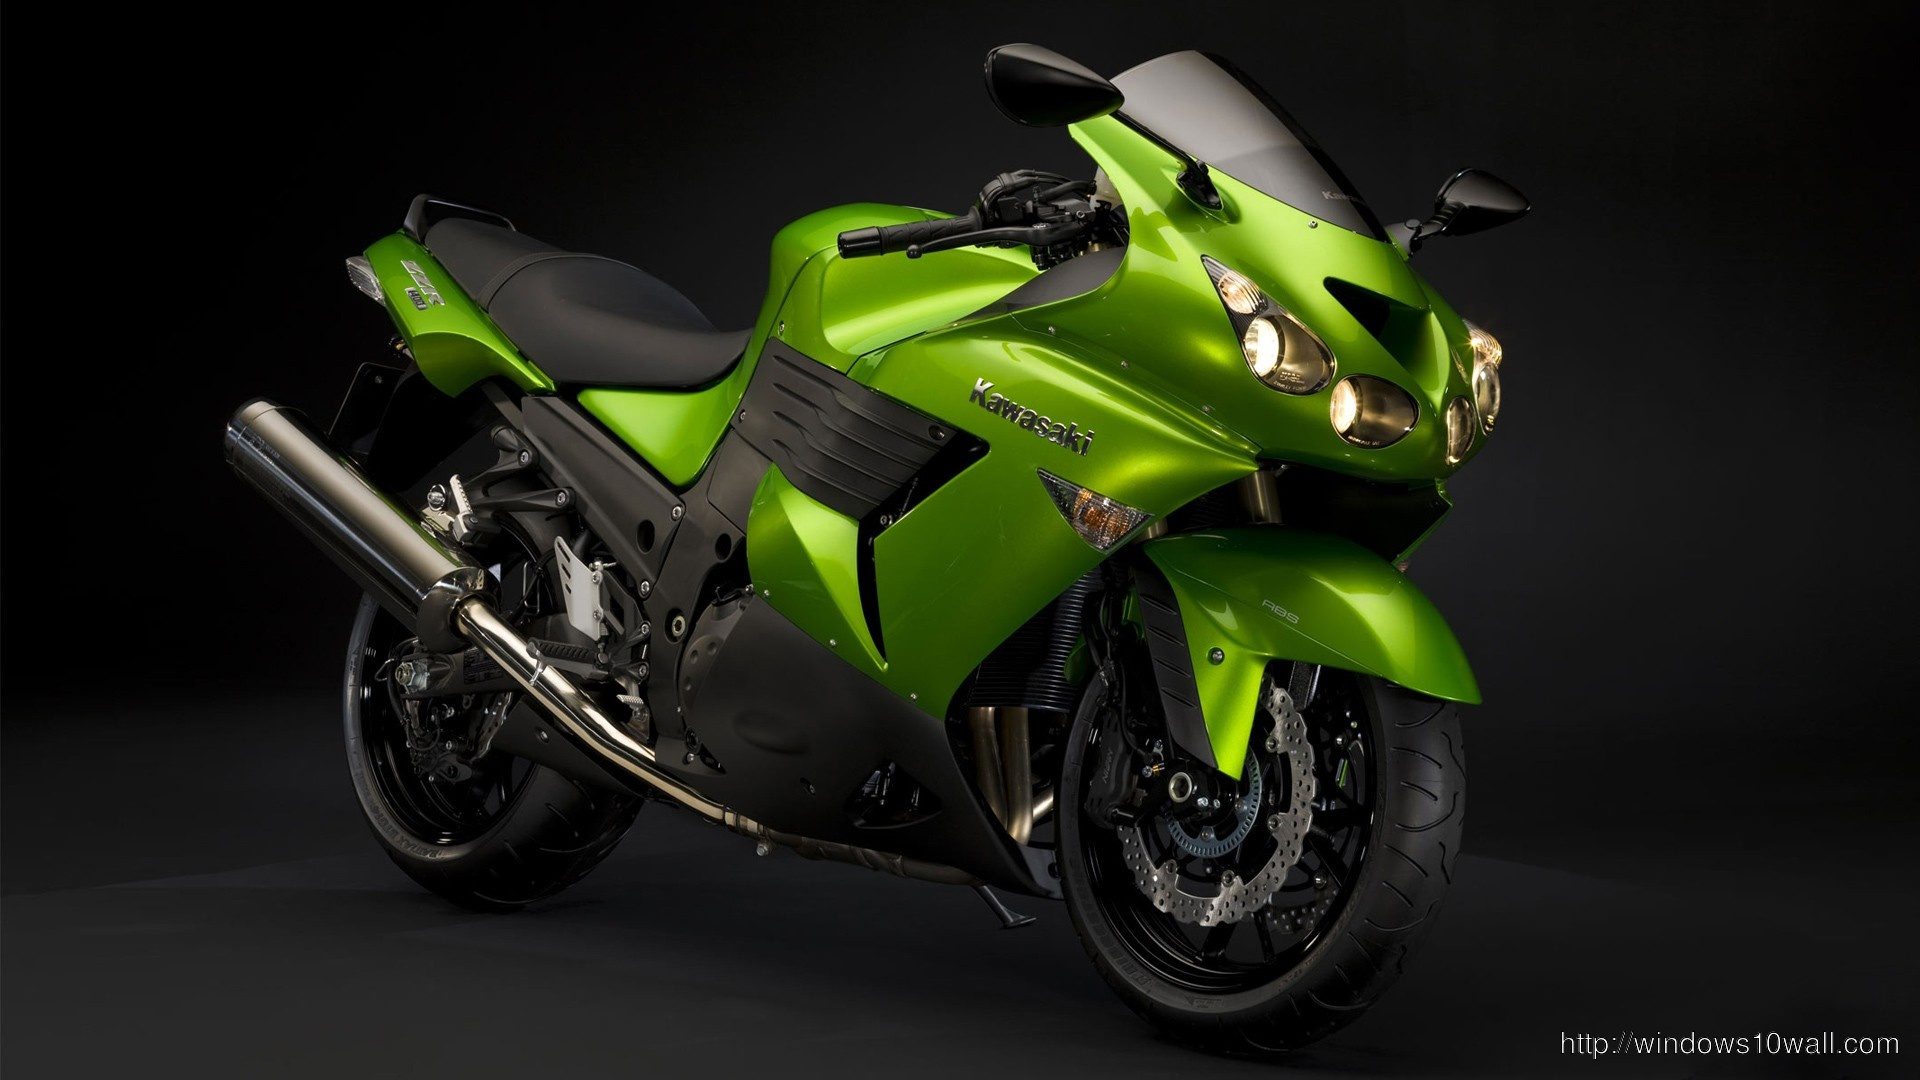 Kawasaki Abs Bike Windows 10 Wallpapers